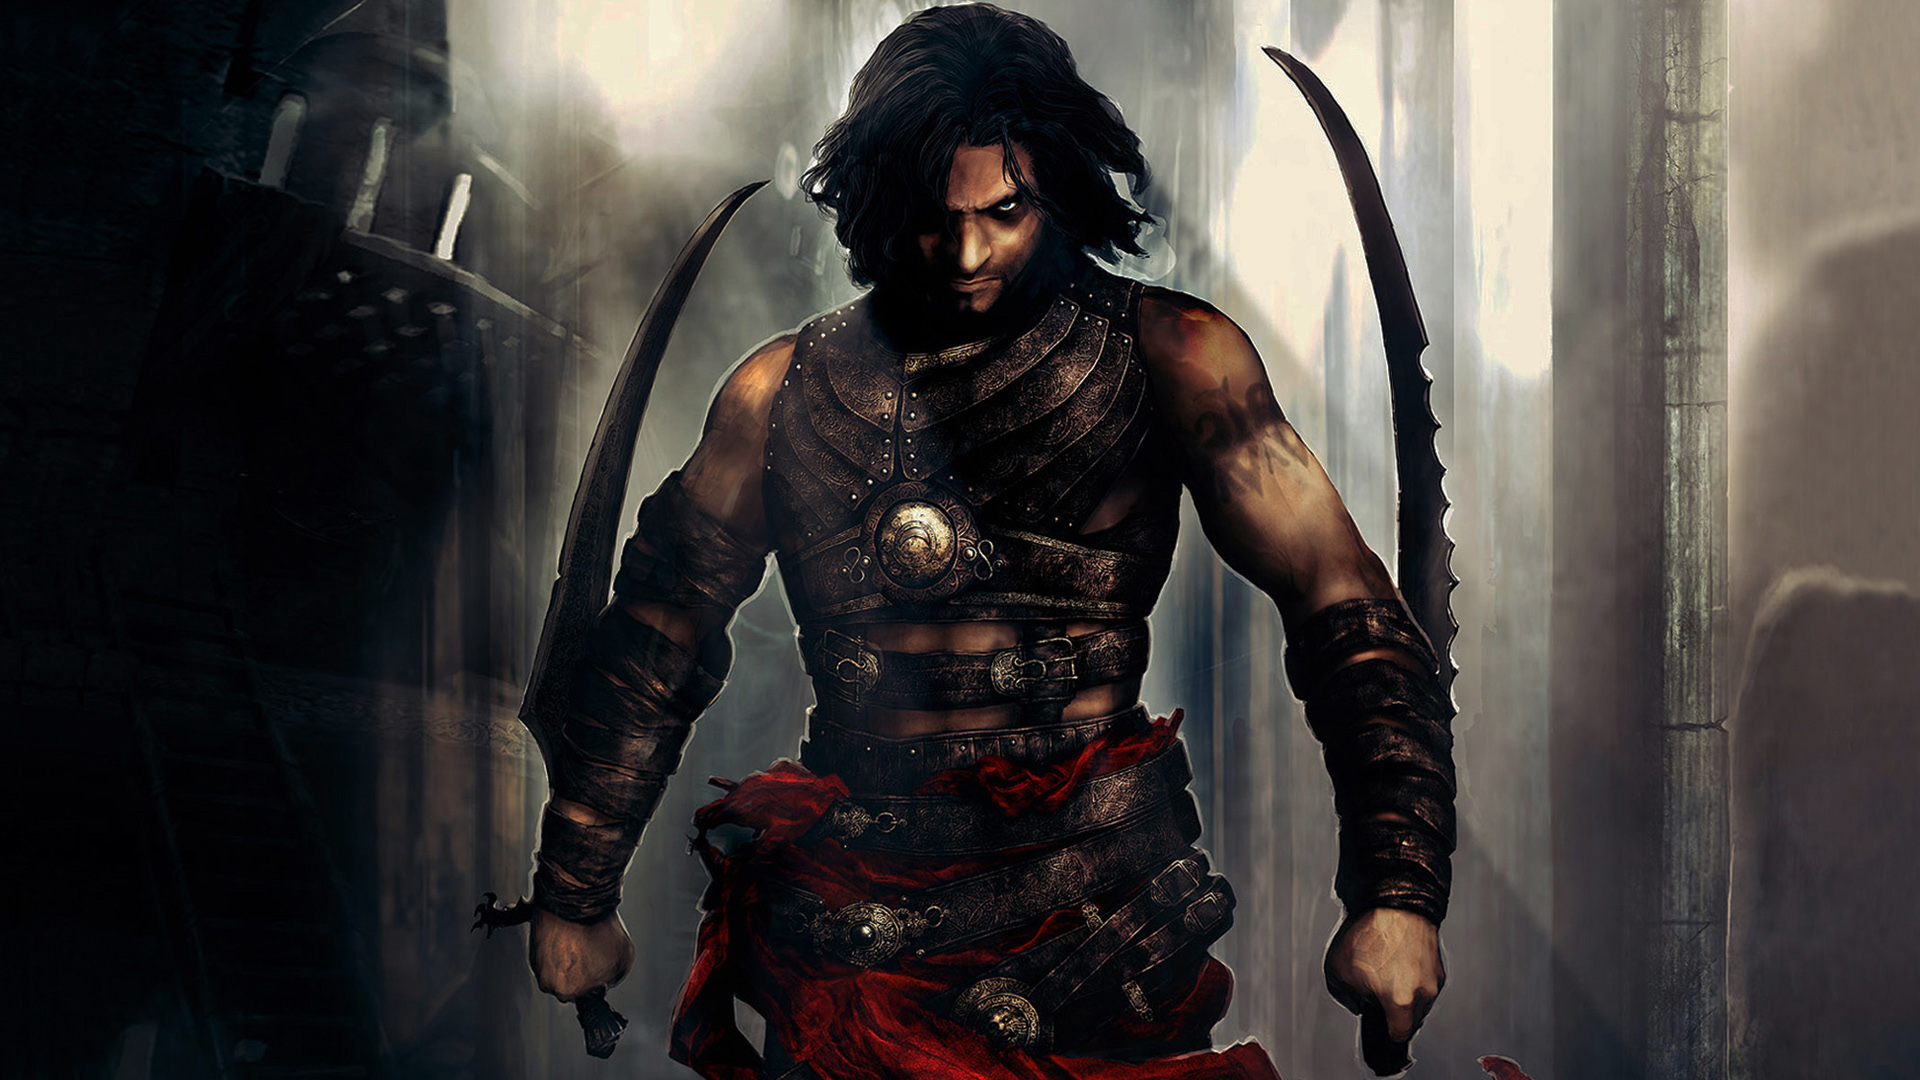 Prince Of Persia Warrior Within Hd Wallpapers 2015 All Hd Wallpapers